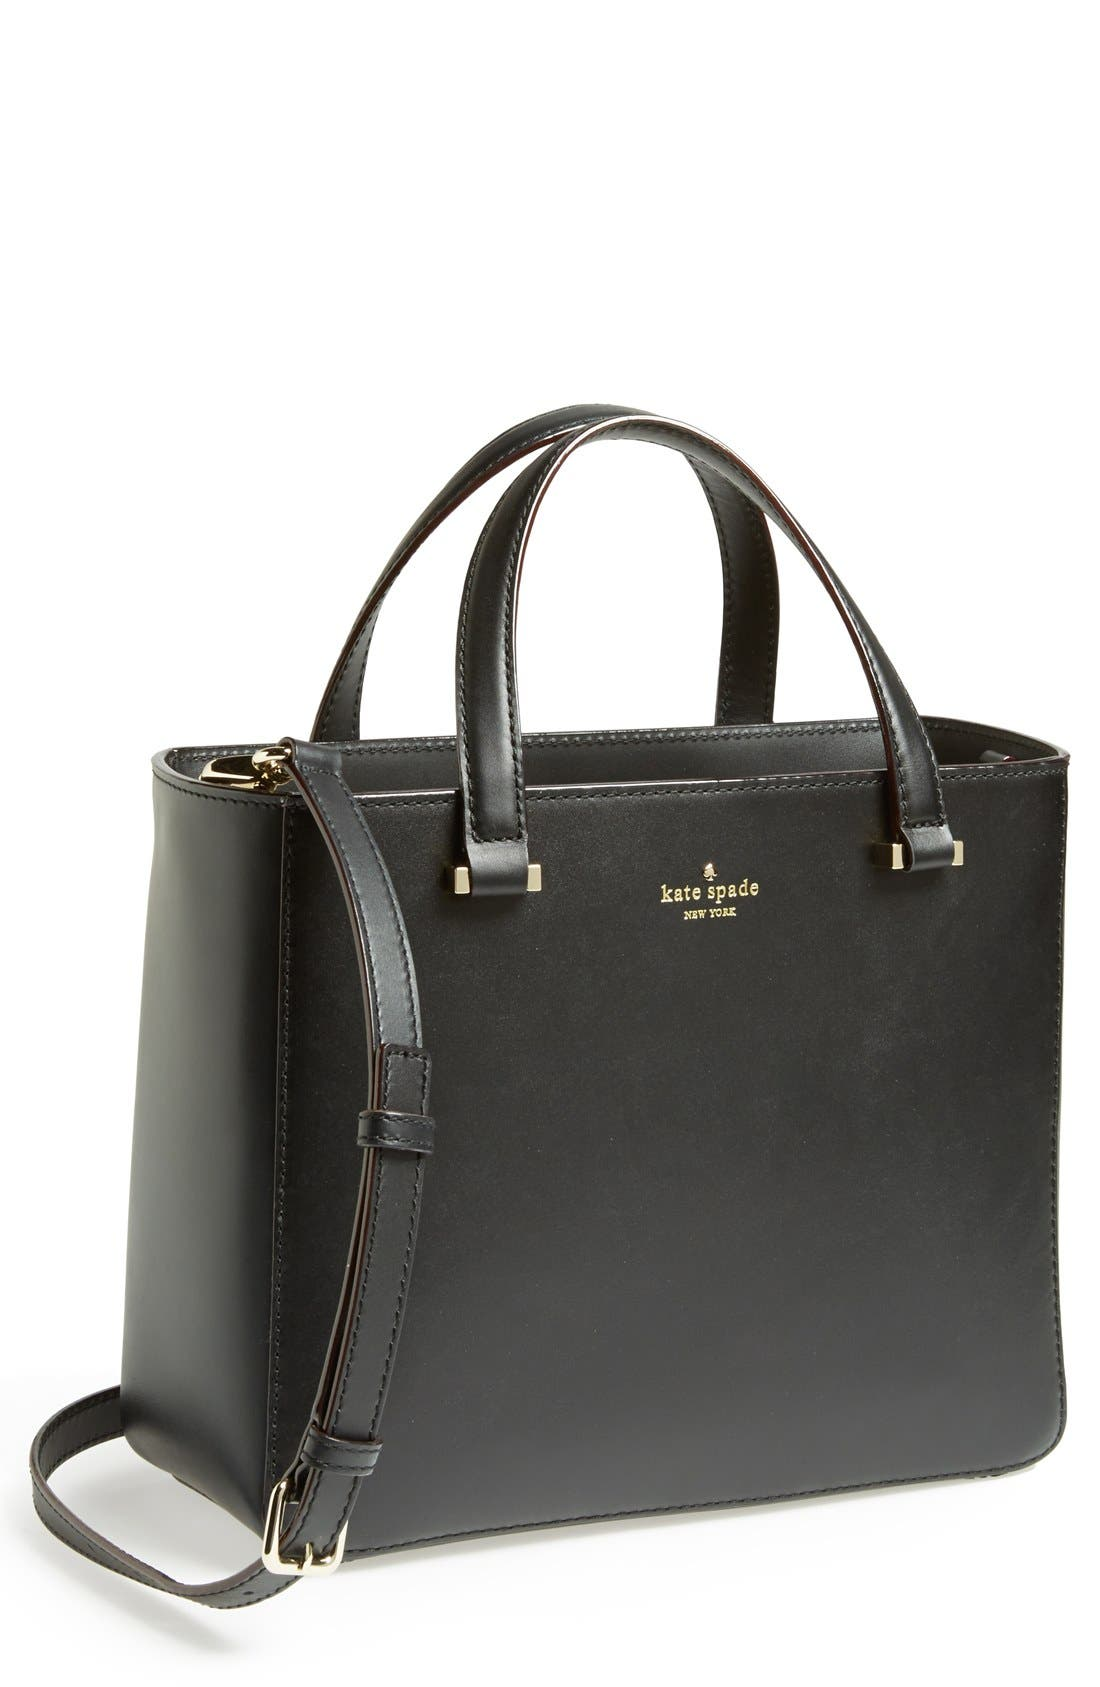 Alternate Image 1 Selected - kate spade new york 'park avenue sweetheart' leather crossbody tote